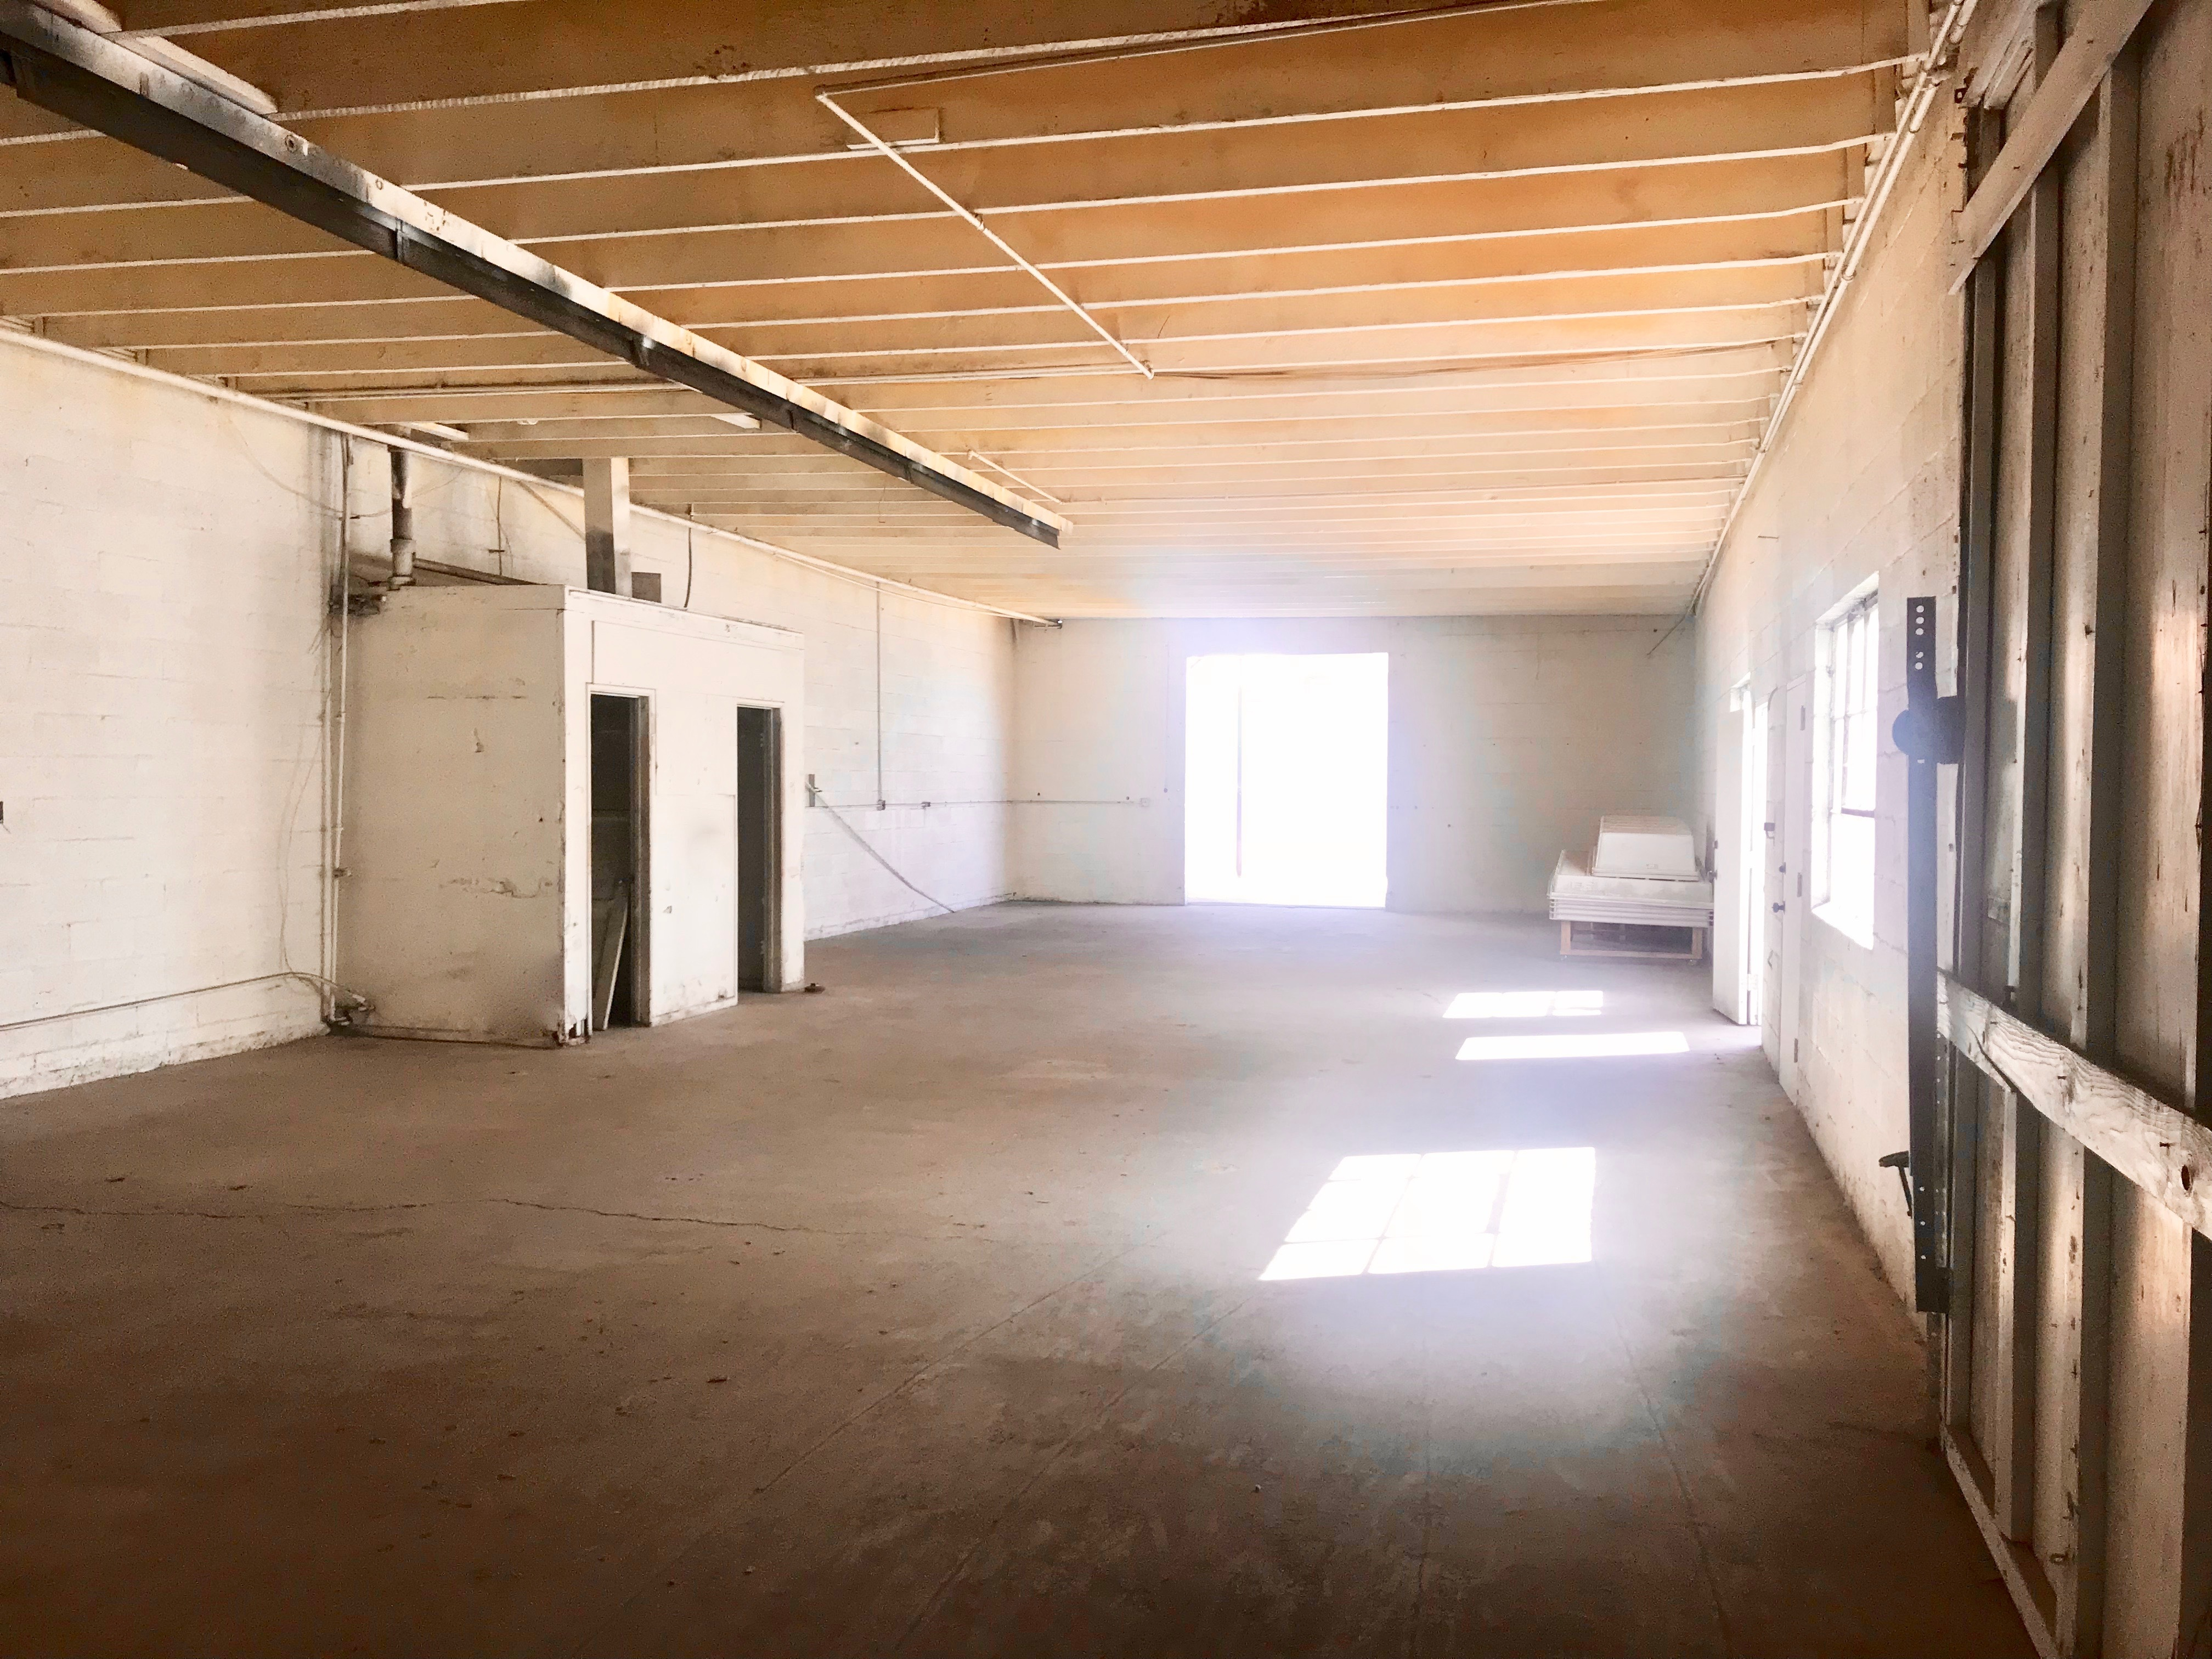 LEASED: WAY Under-Market: 6.4K SQFT in North Hollywood at $1.50 PSF